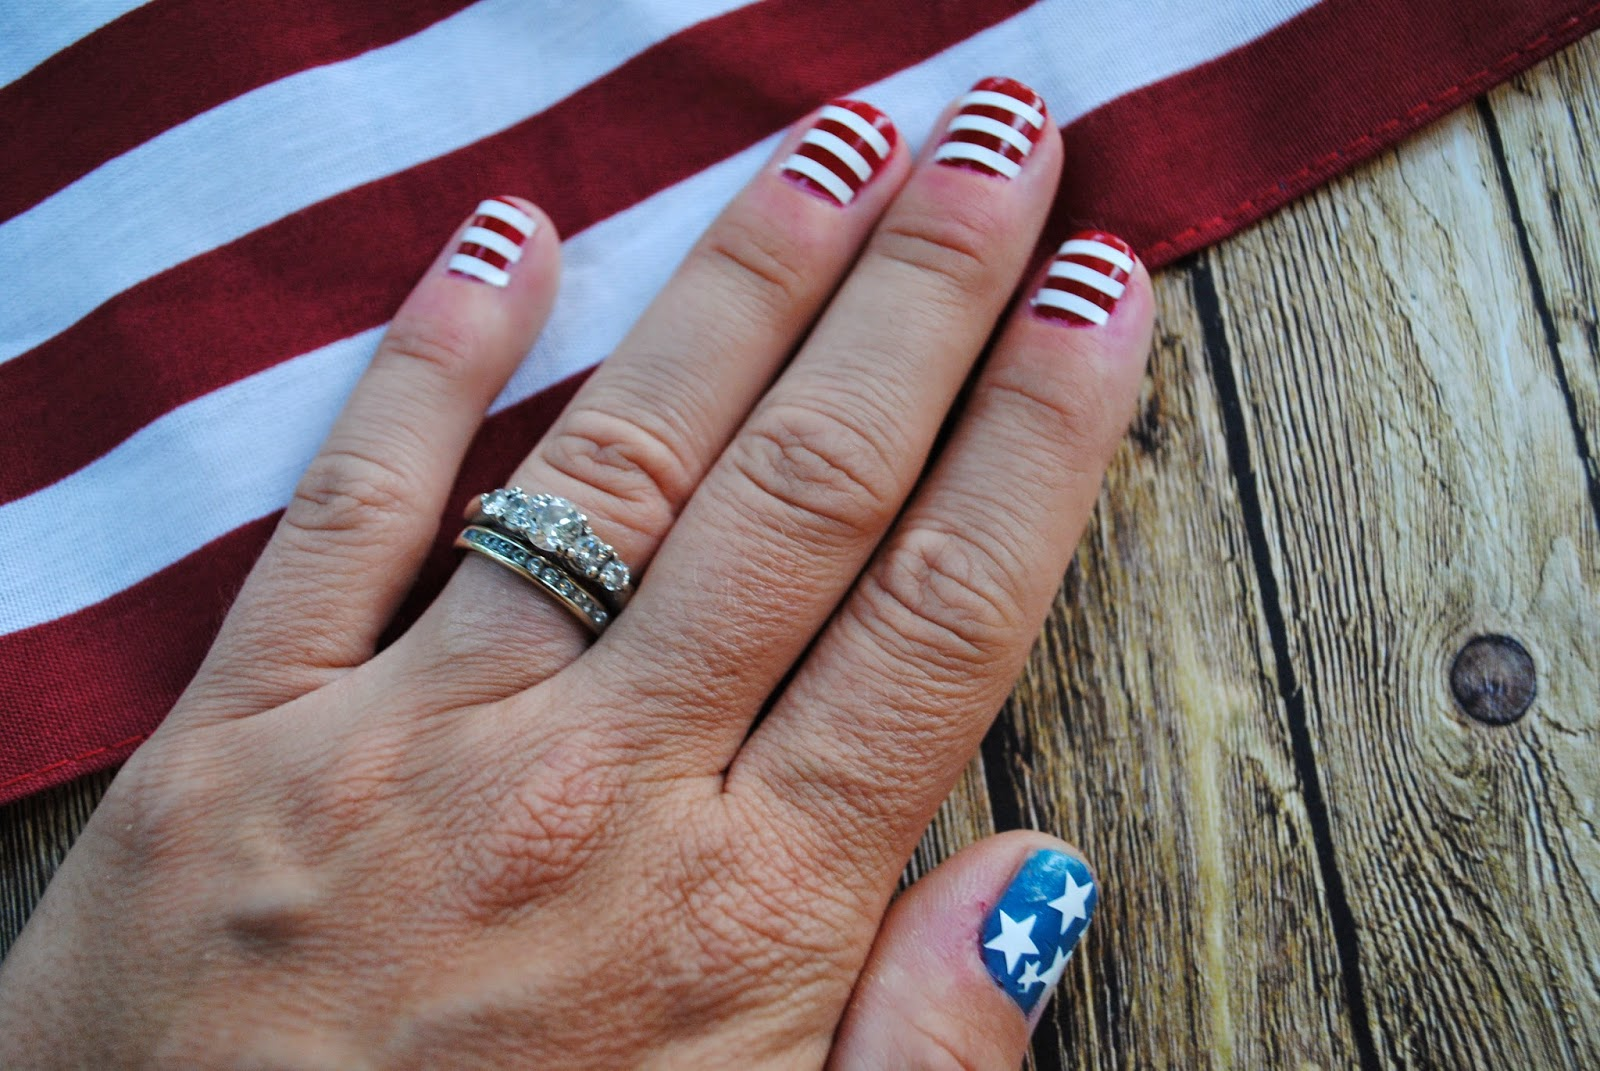 Vinyl nail decal tips and sizing guidelines silhouette tutorial usa july 4 vinyl nail decals nails patriotic nails nail art prinsesfo Gallery